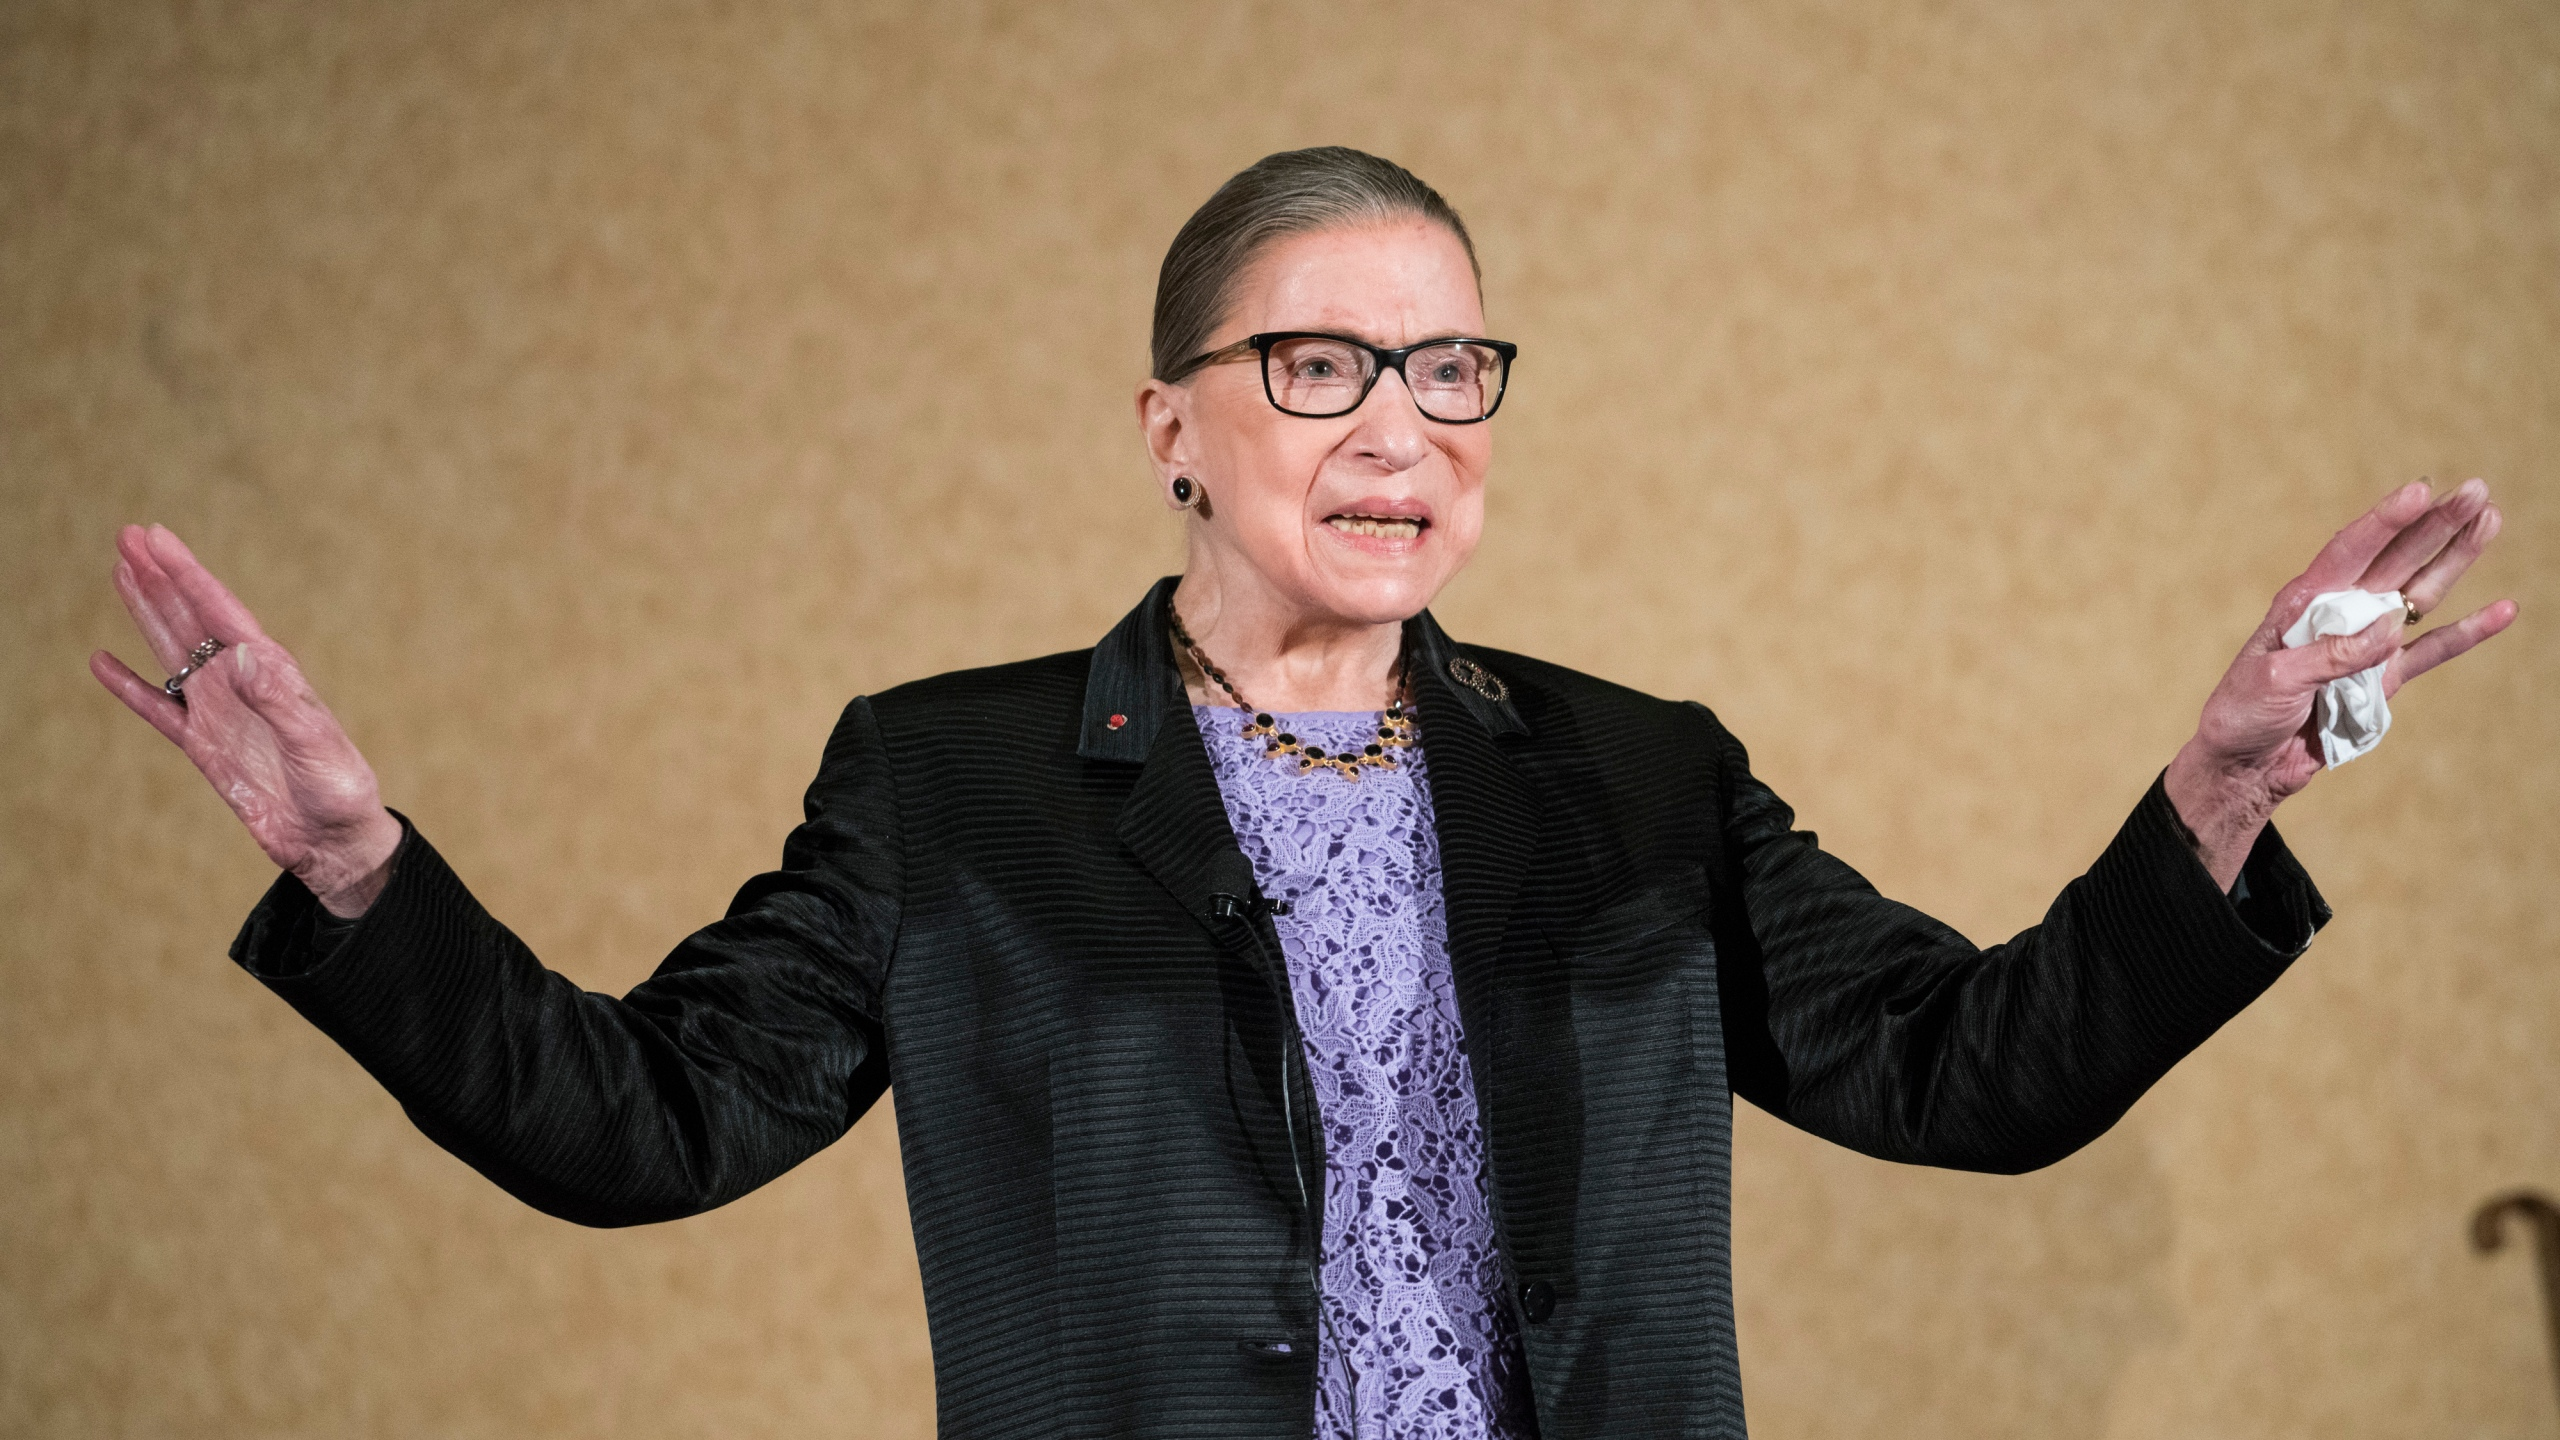 Supreme_Court_Justice_Ginsburg_Staying_Put_79146-159532.jpg75227221